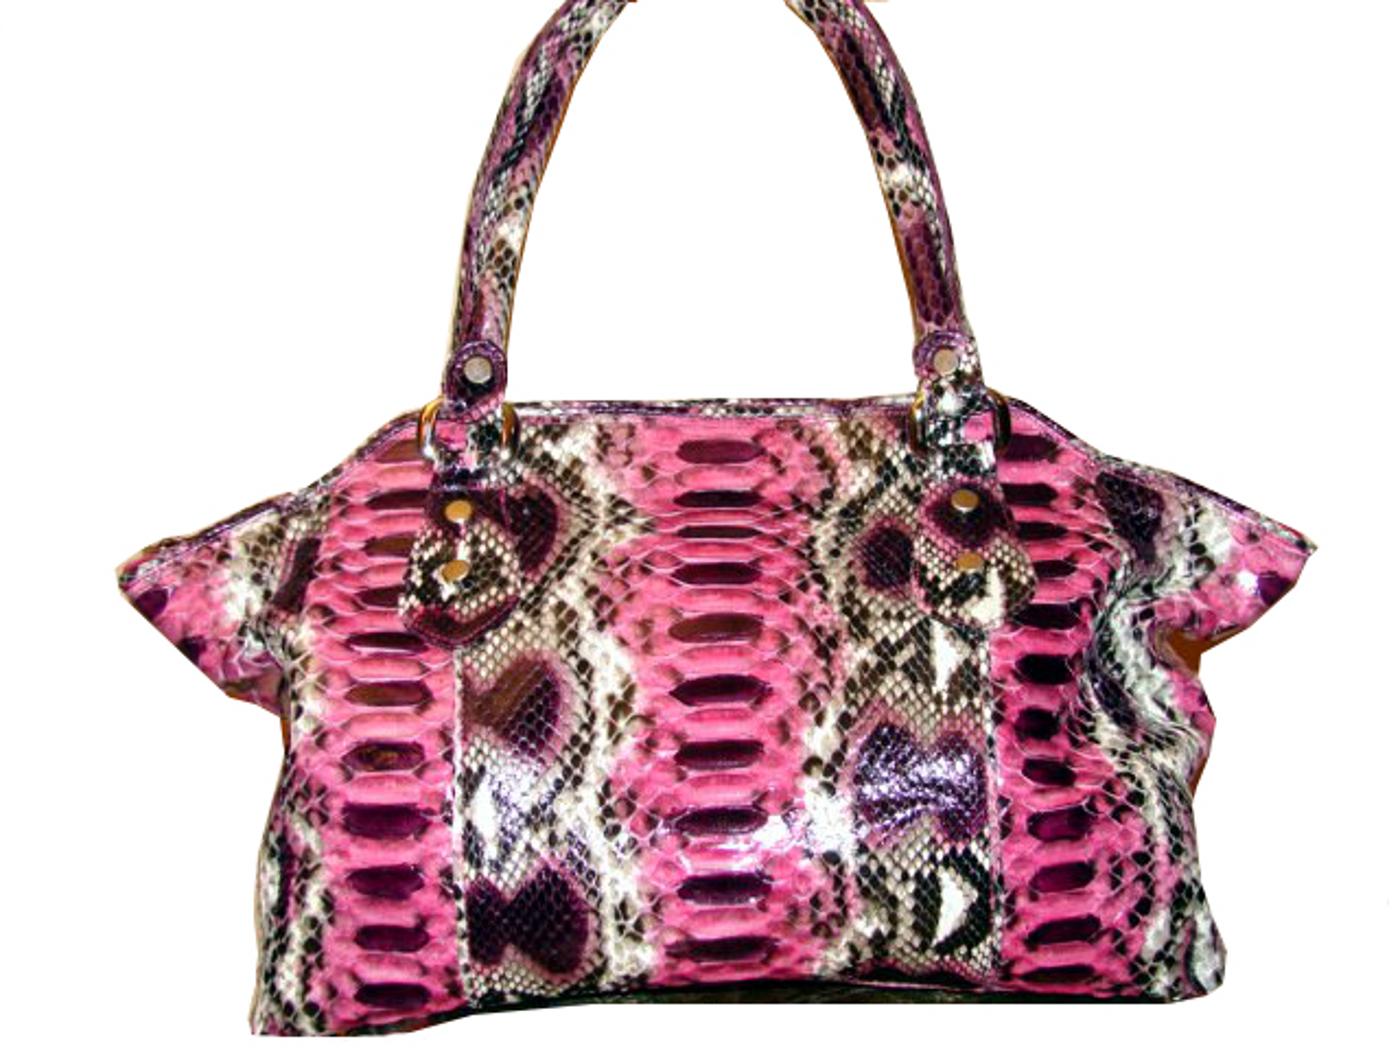 Braschi Handbag Bella Orquidea Color in Genuine Python Leather!